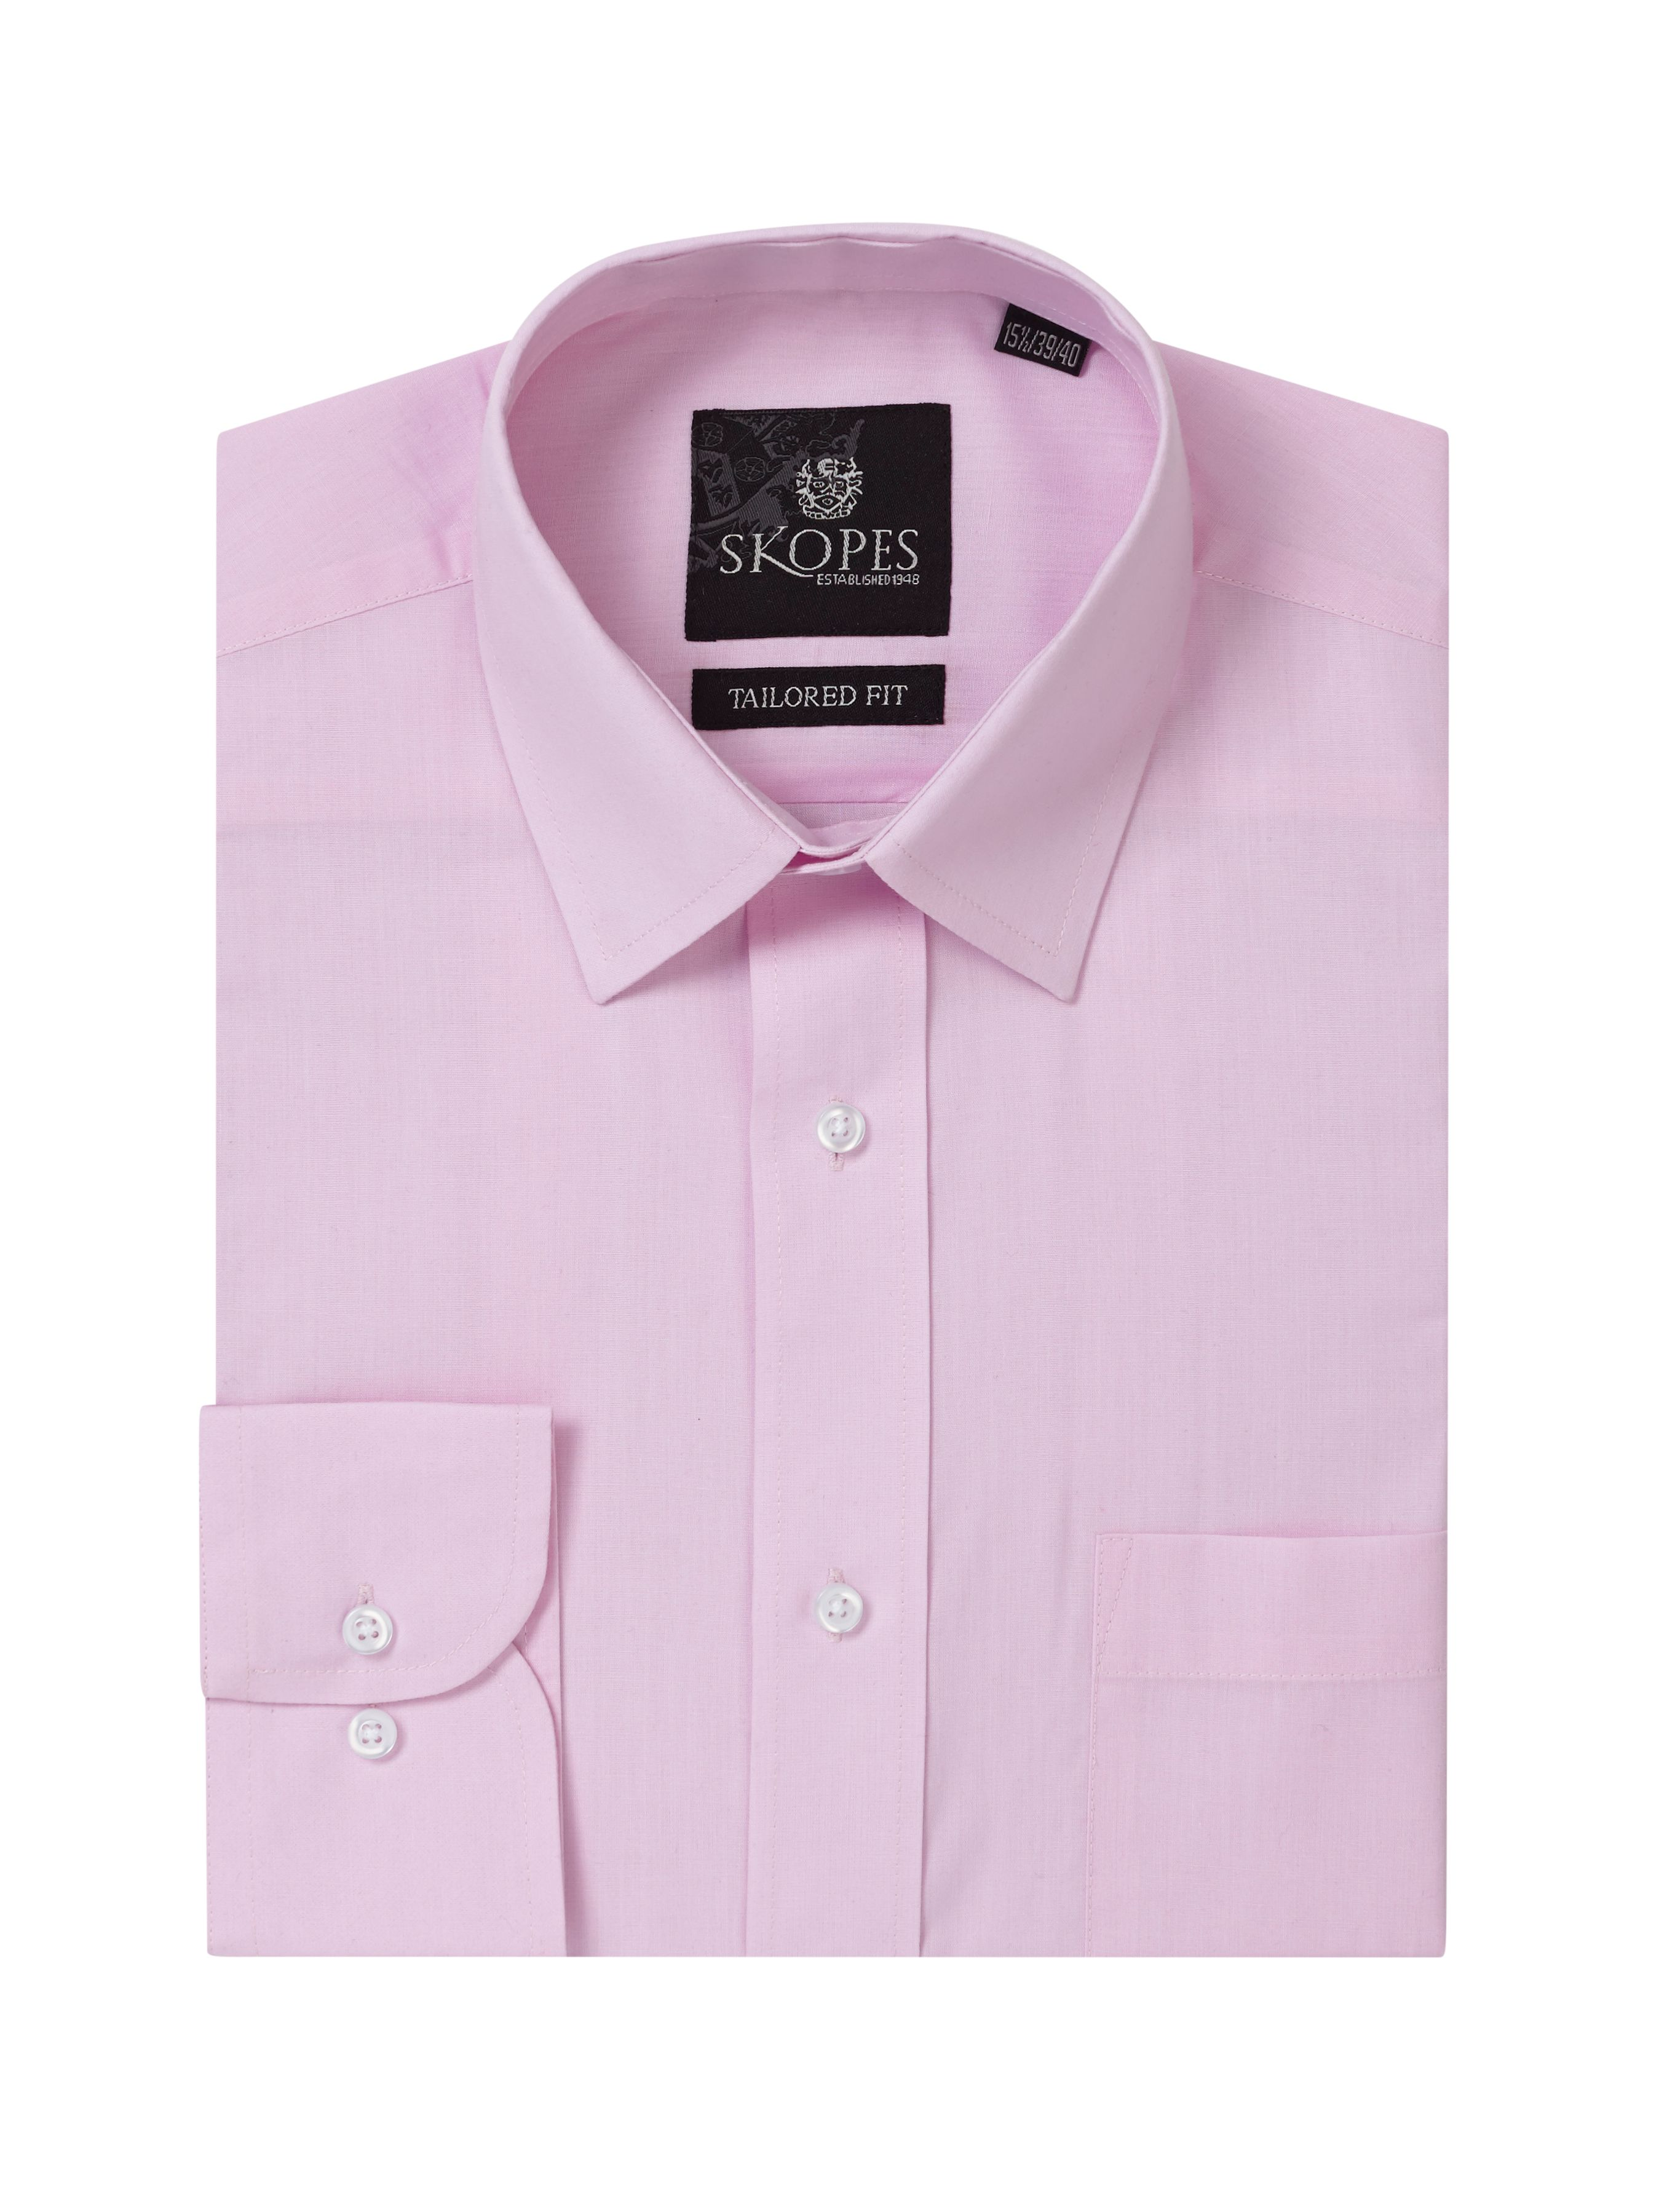 Mens Skopes Easy Care Formal Tailored Shirts Pink